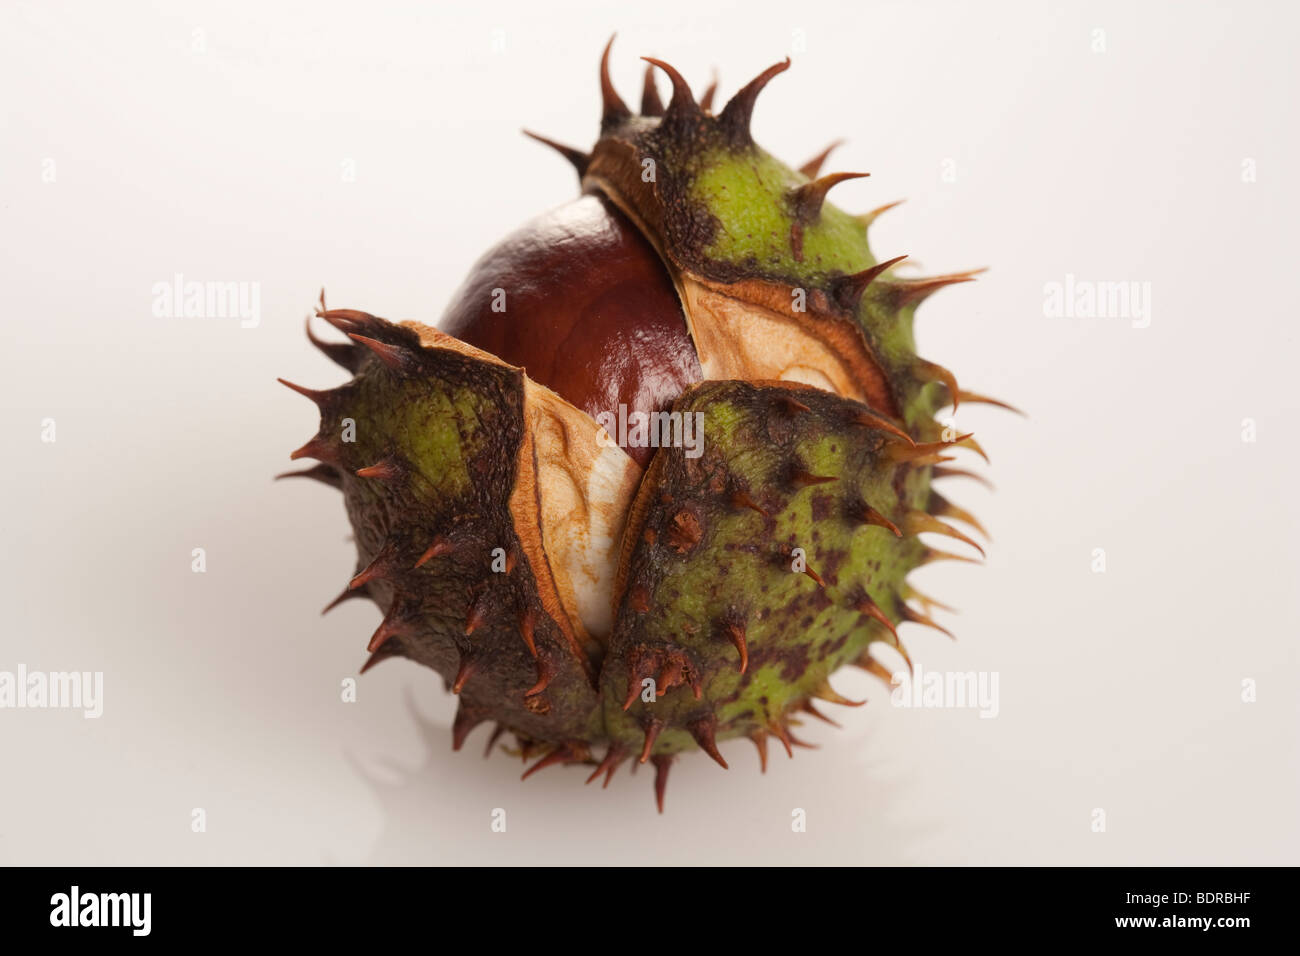 horse chestnut conker white background still life - Stock Image